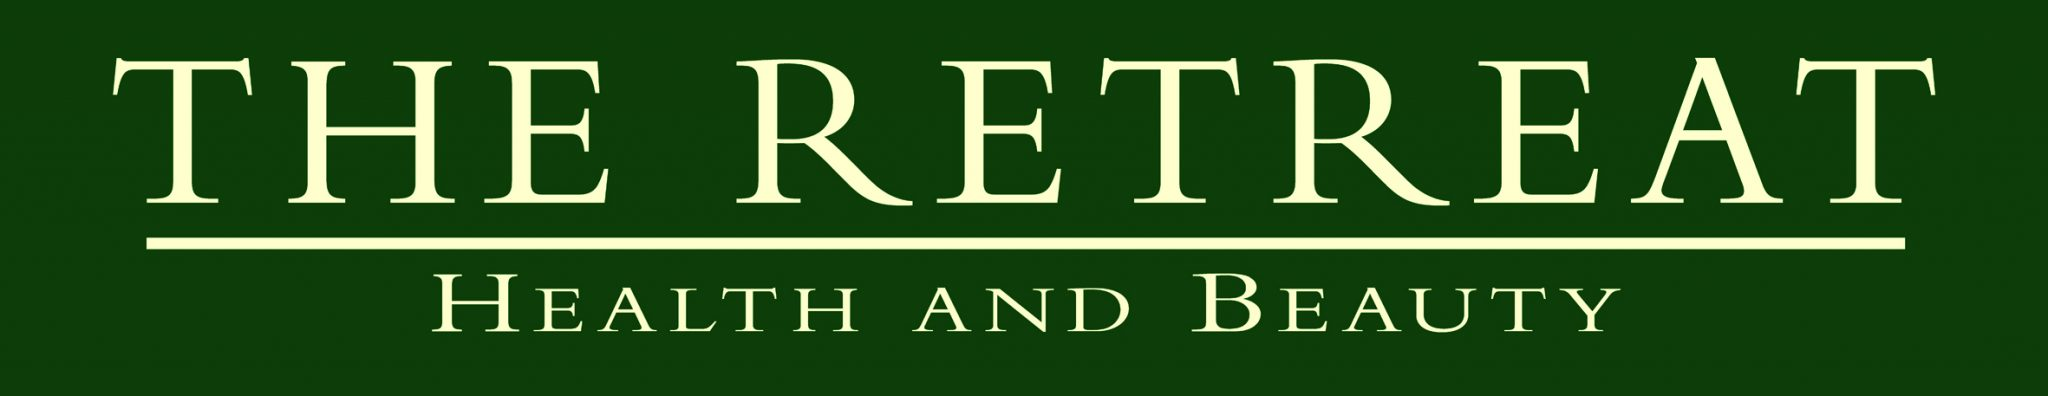 the-retreat-logo